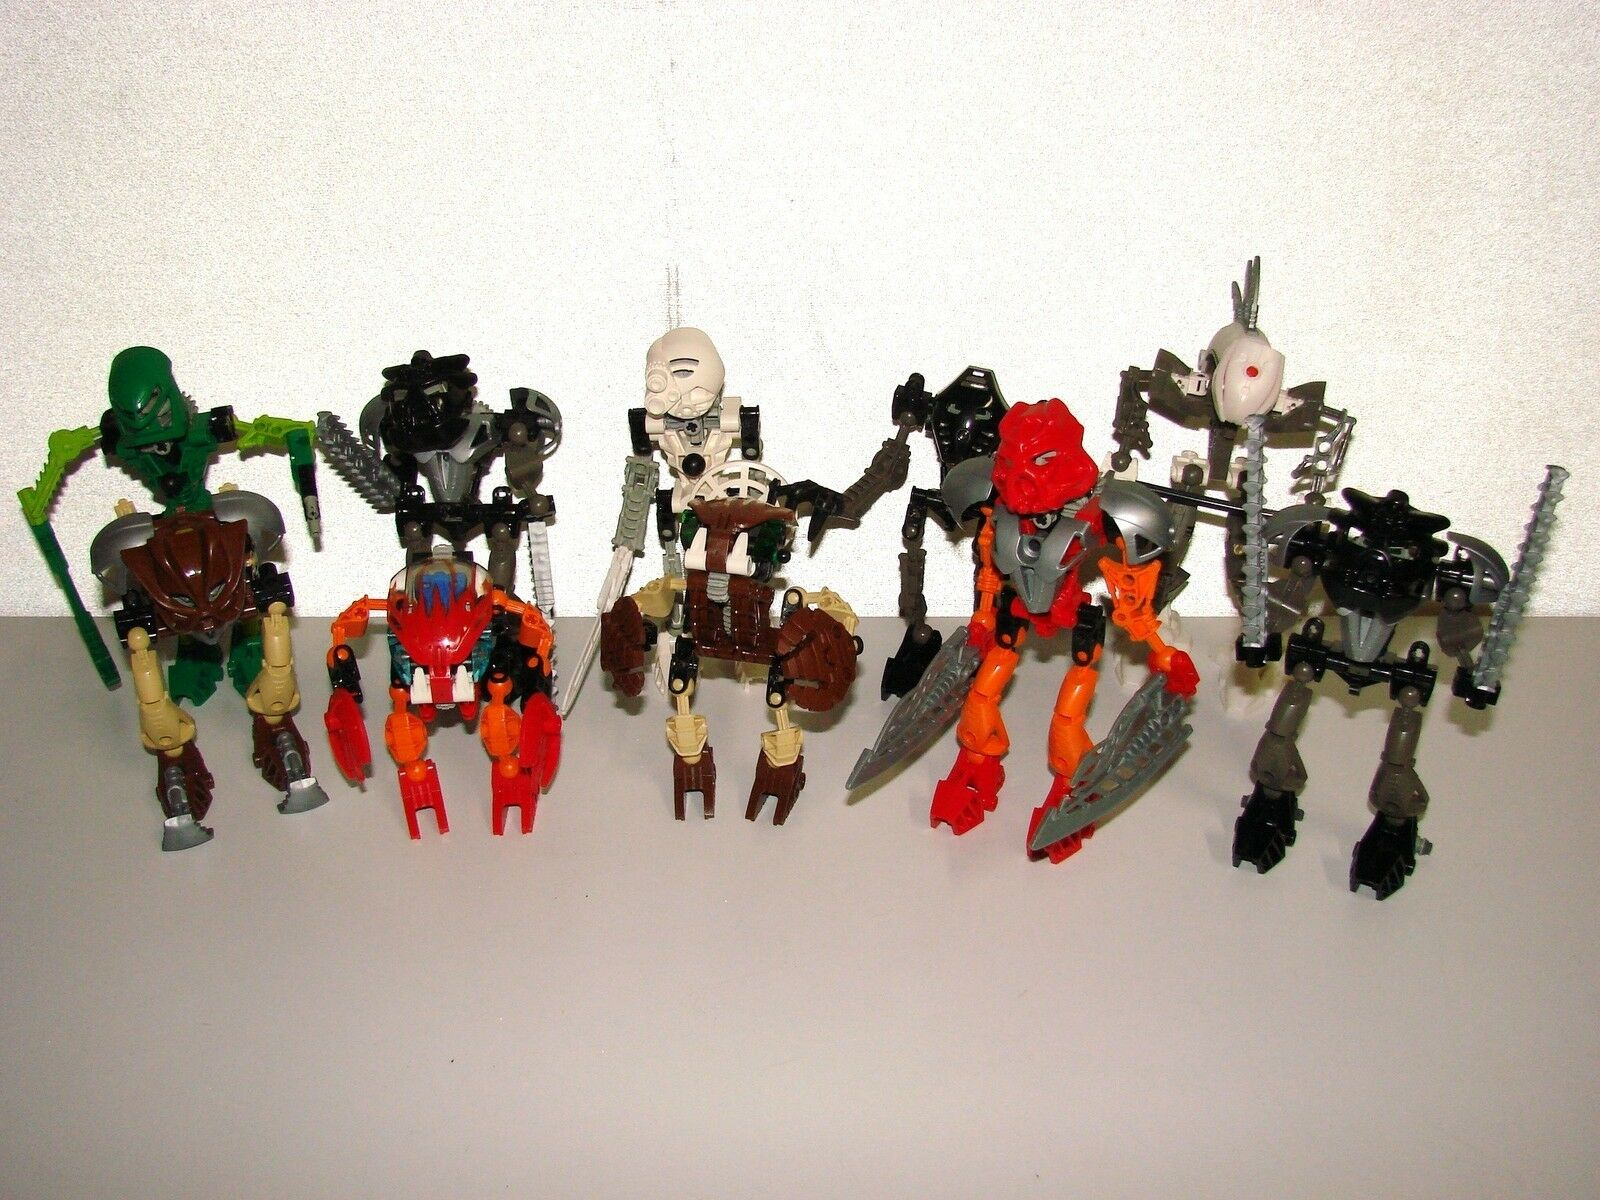 SET OF LEGO BIONICLE REF 8532 8535 8536 8560 8563 8566 x 2 8568 8572 8588 no.11